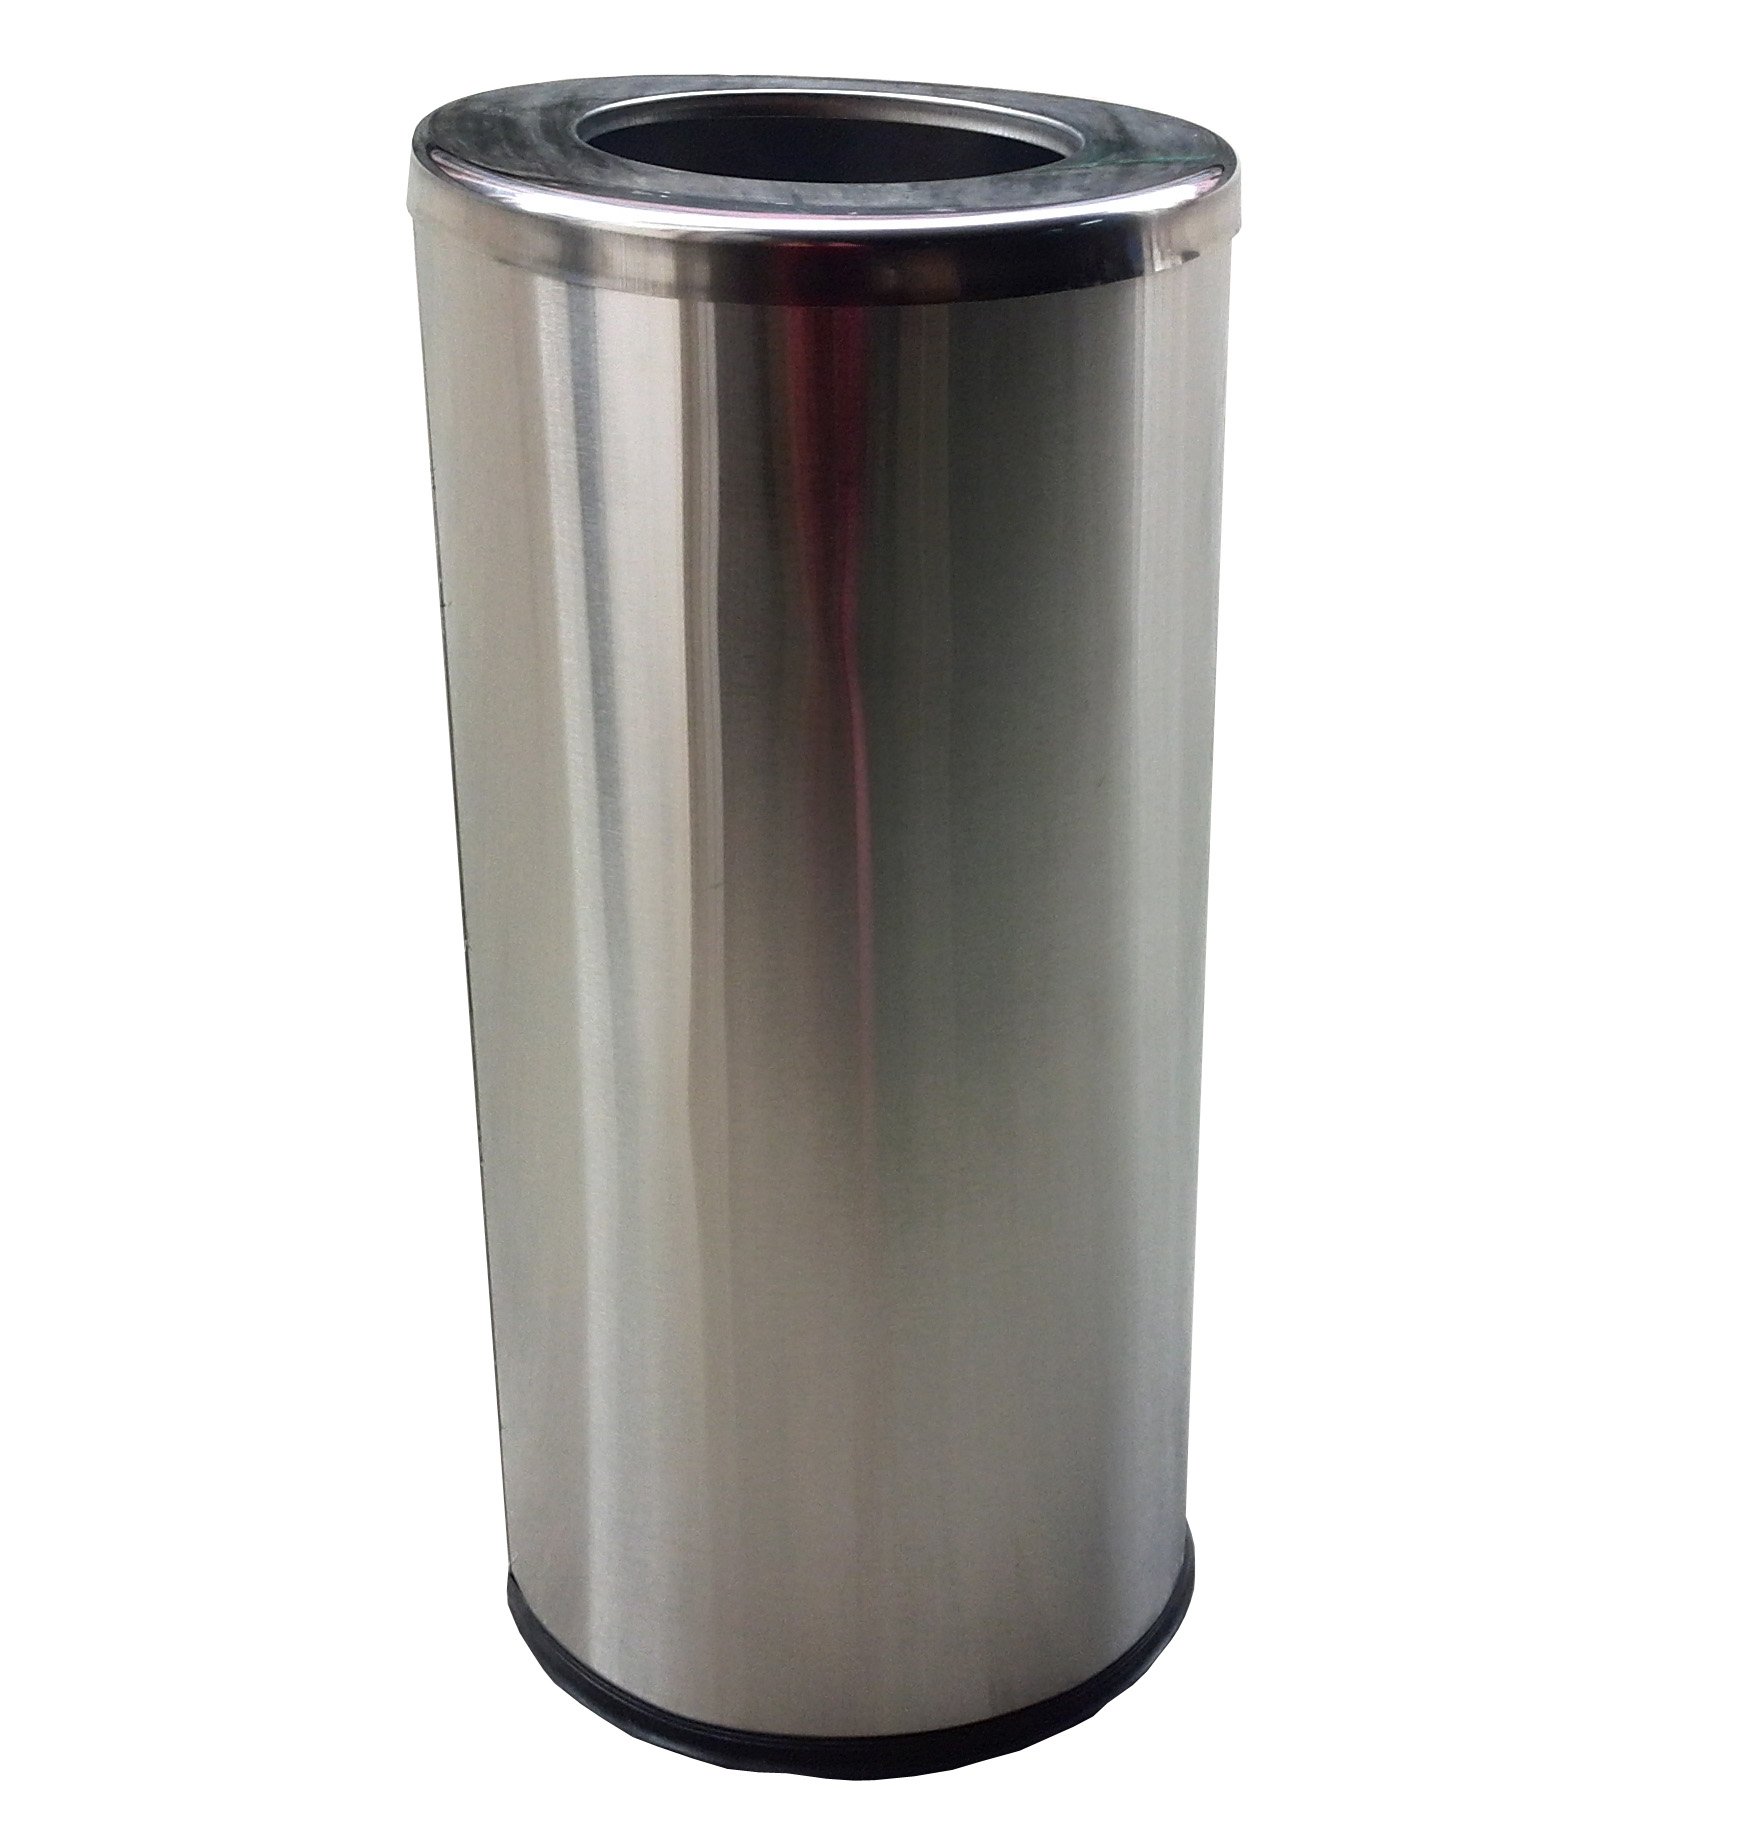 Stainless Steel Tall Kitchen Garbage Can Fixturedisplays Stainless Steel Trash Can Garbage Bin